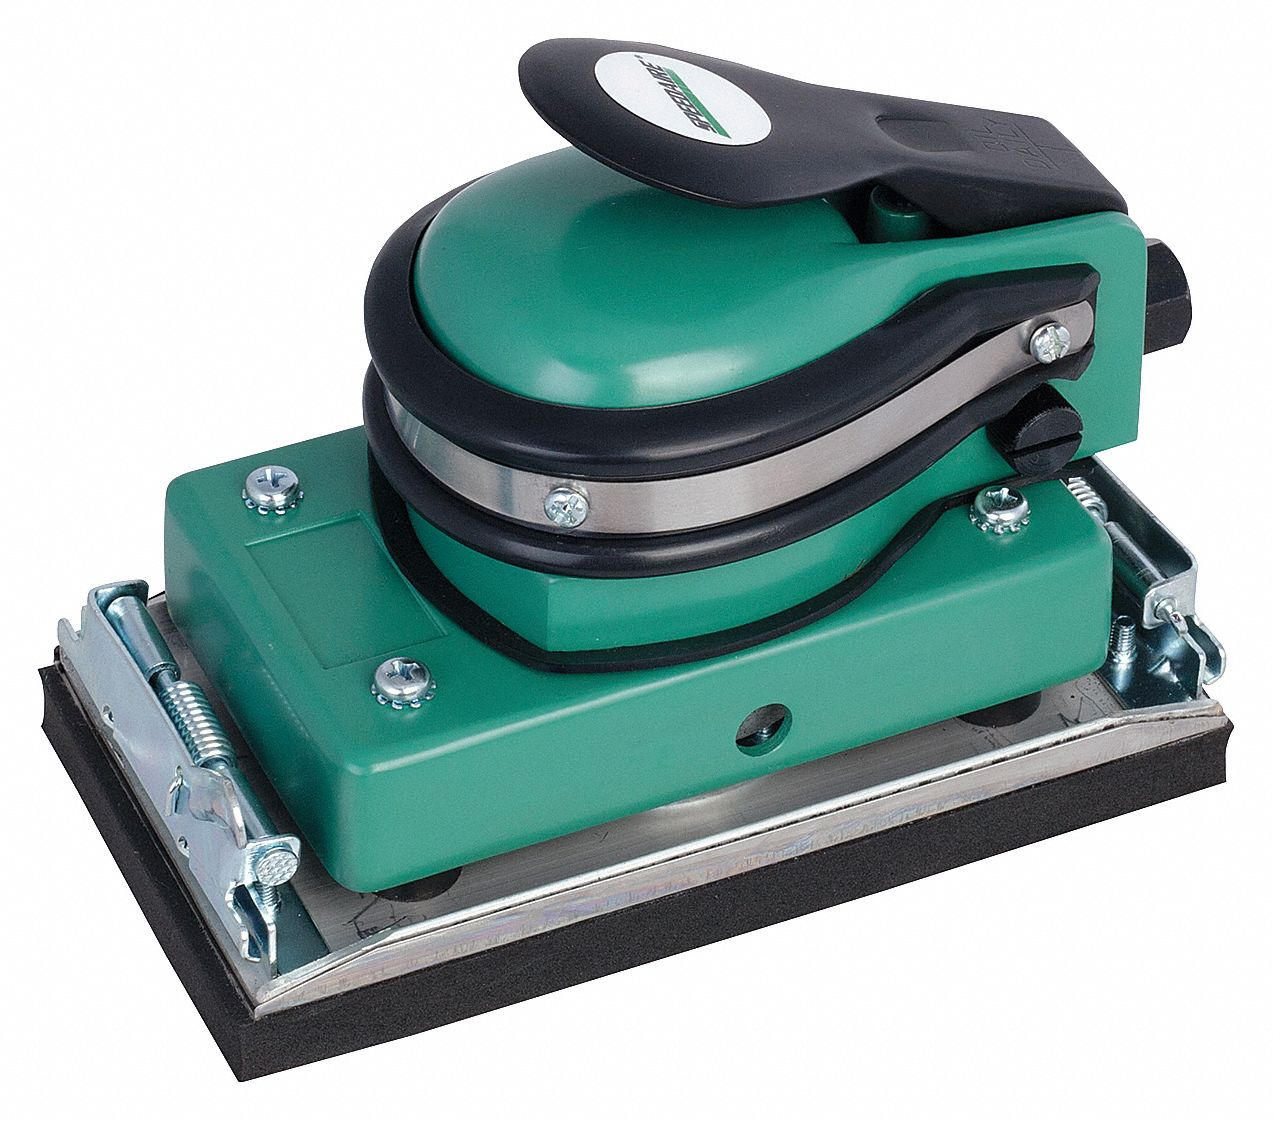 Air Random Orbital Sander, 3 5/8 in x 6 1/2 in Foam Rubber, 5/32 in Orbit Dia., Non-Vacuum, 0.3 hp H